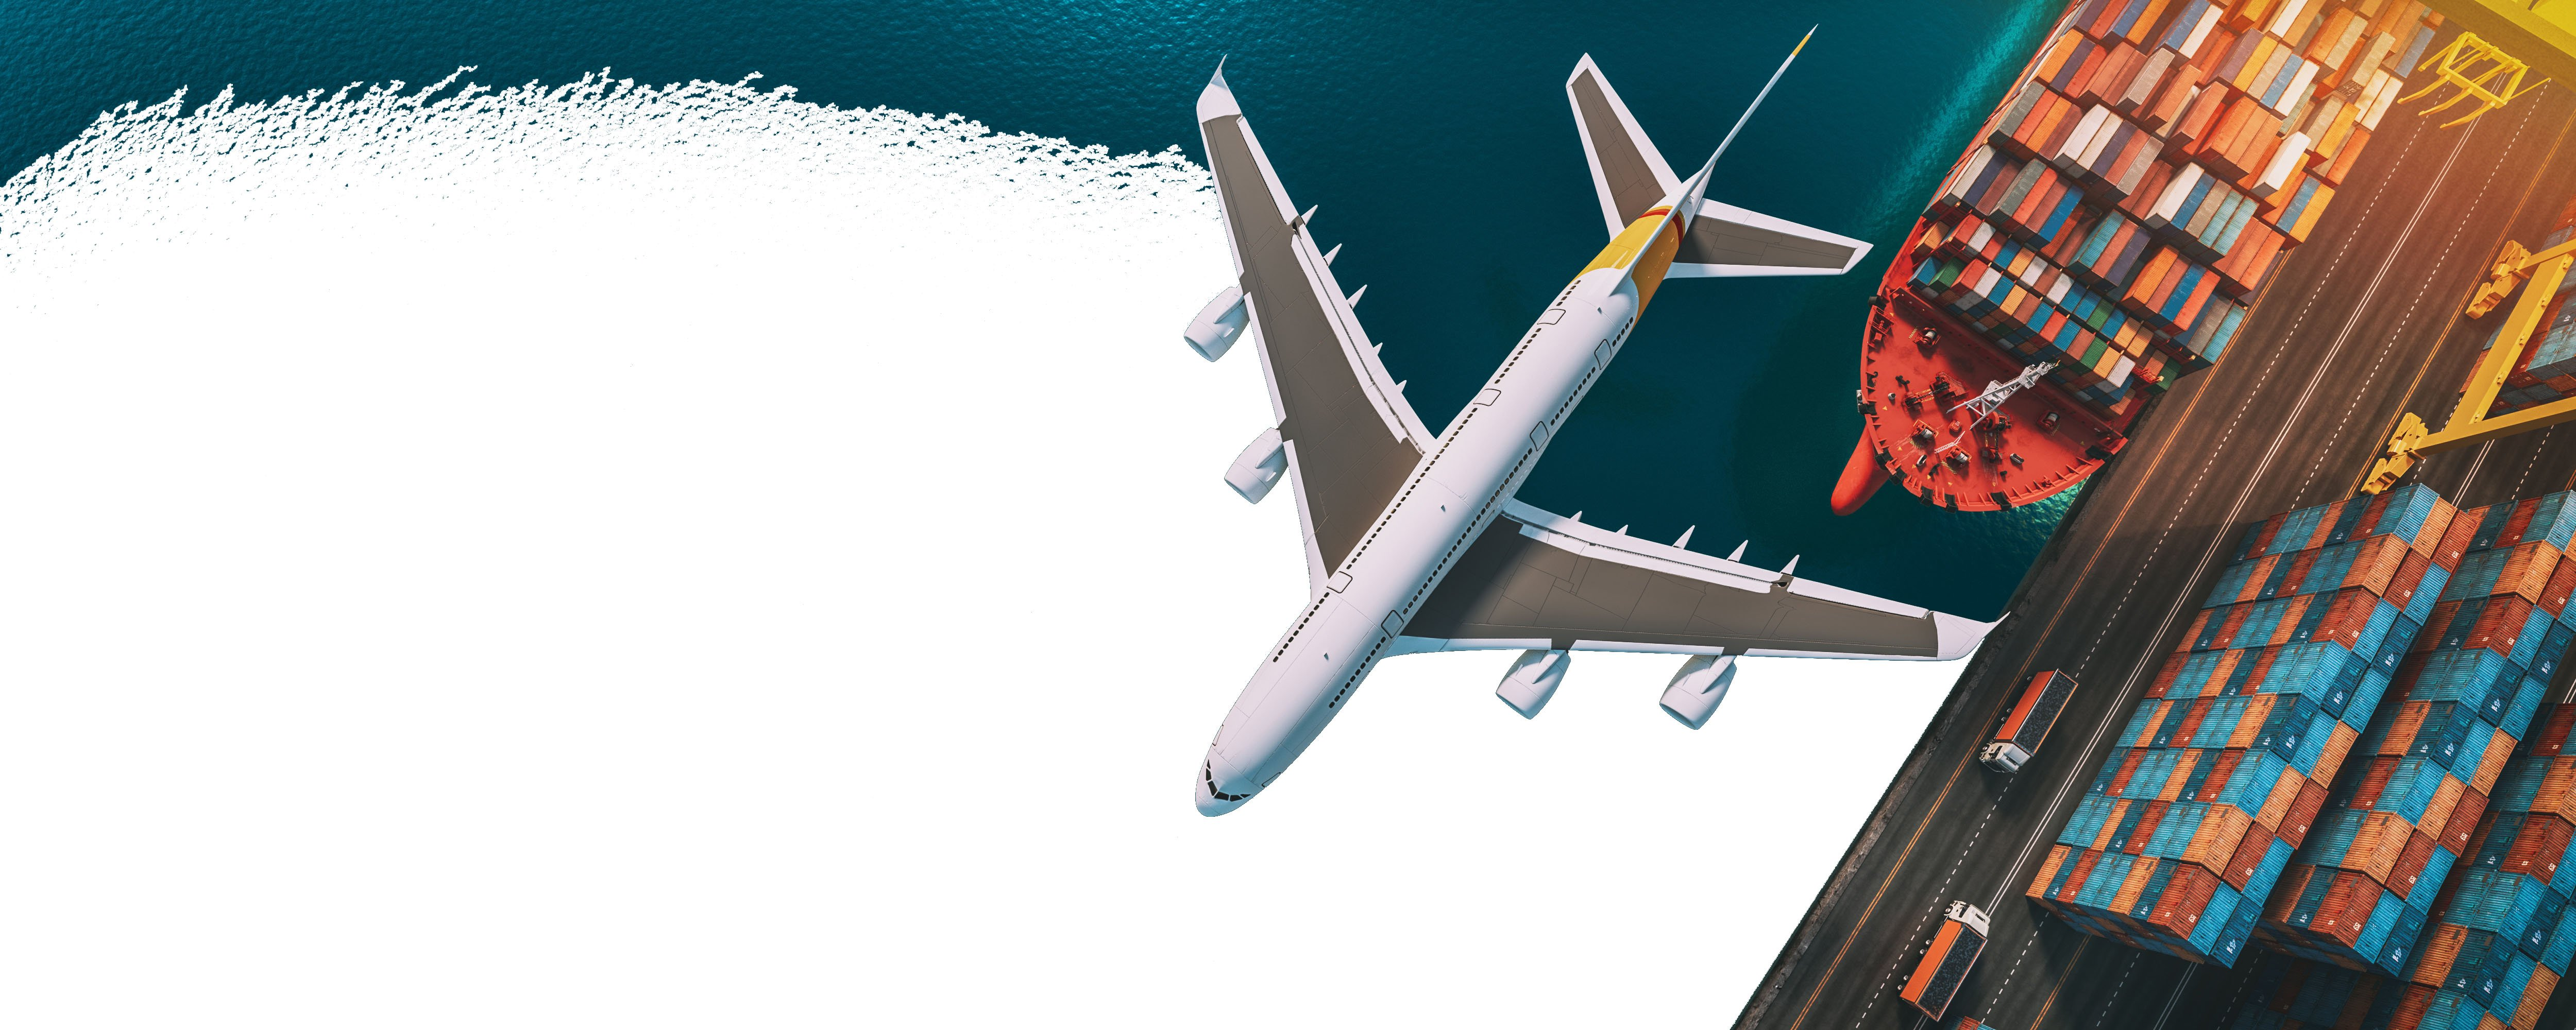 protecting cargo from moisture, temperature changes and contamination